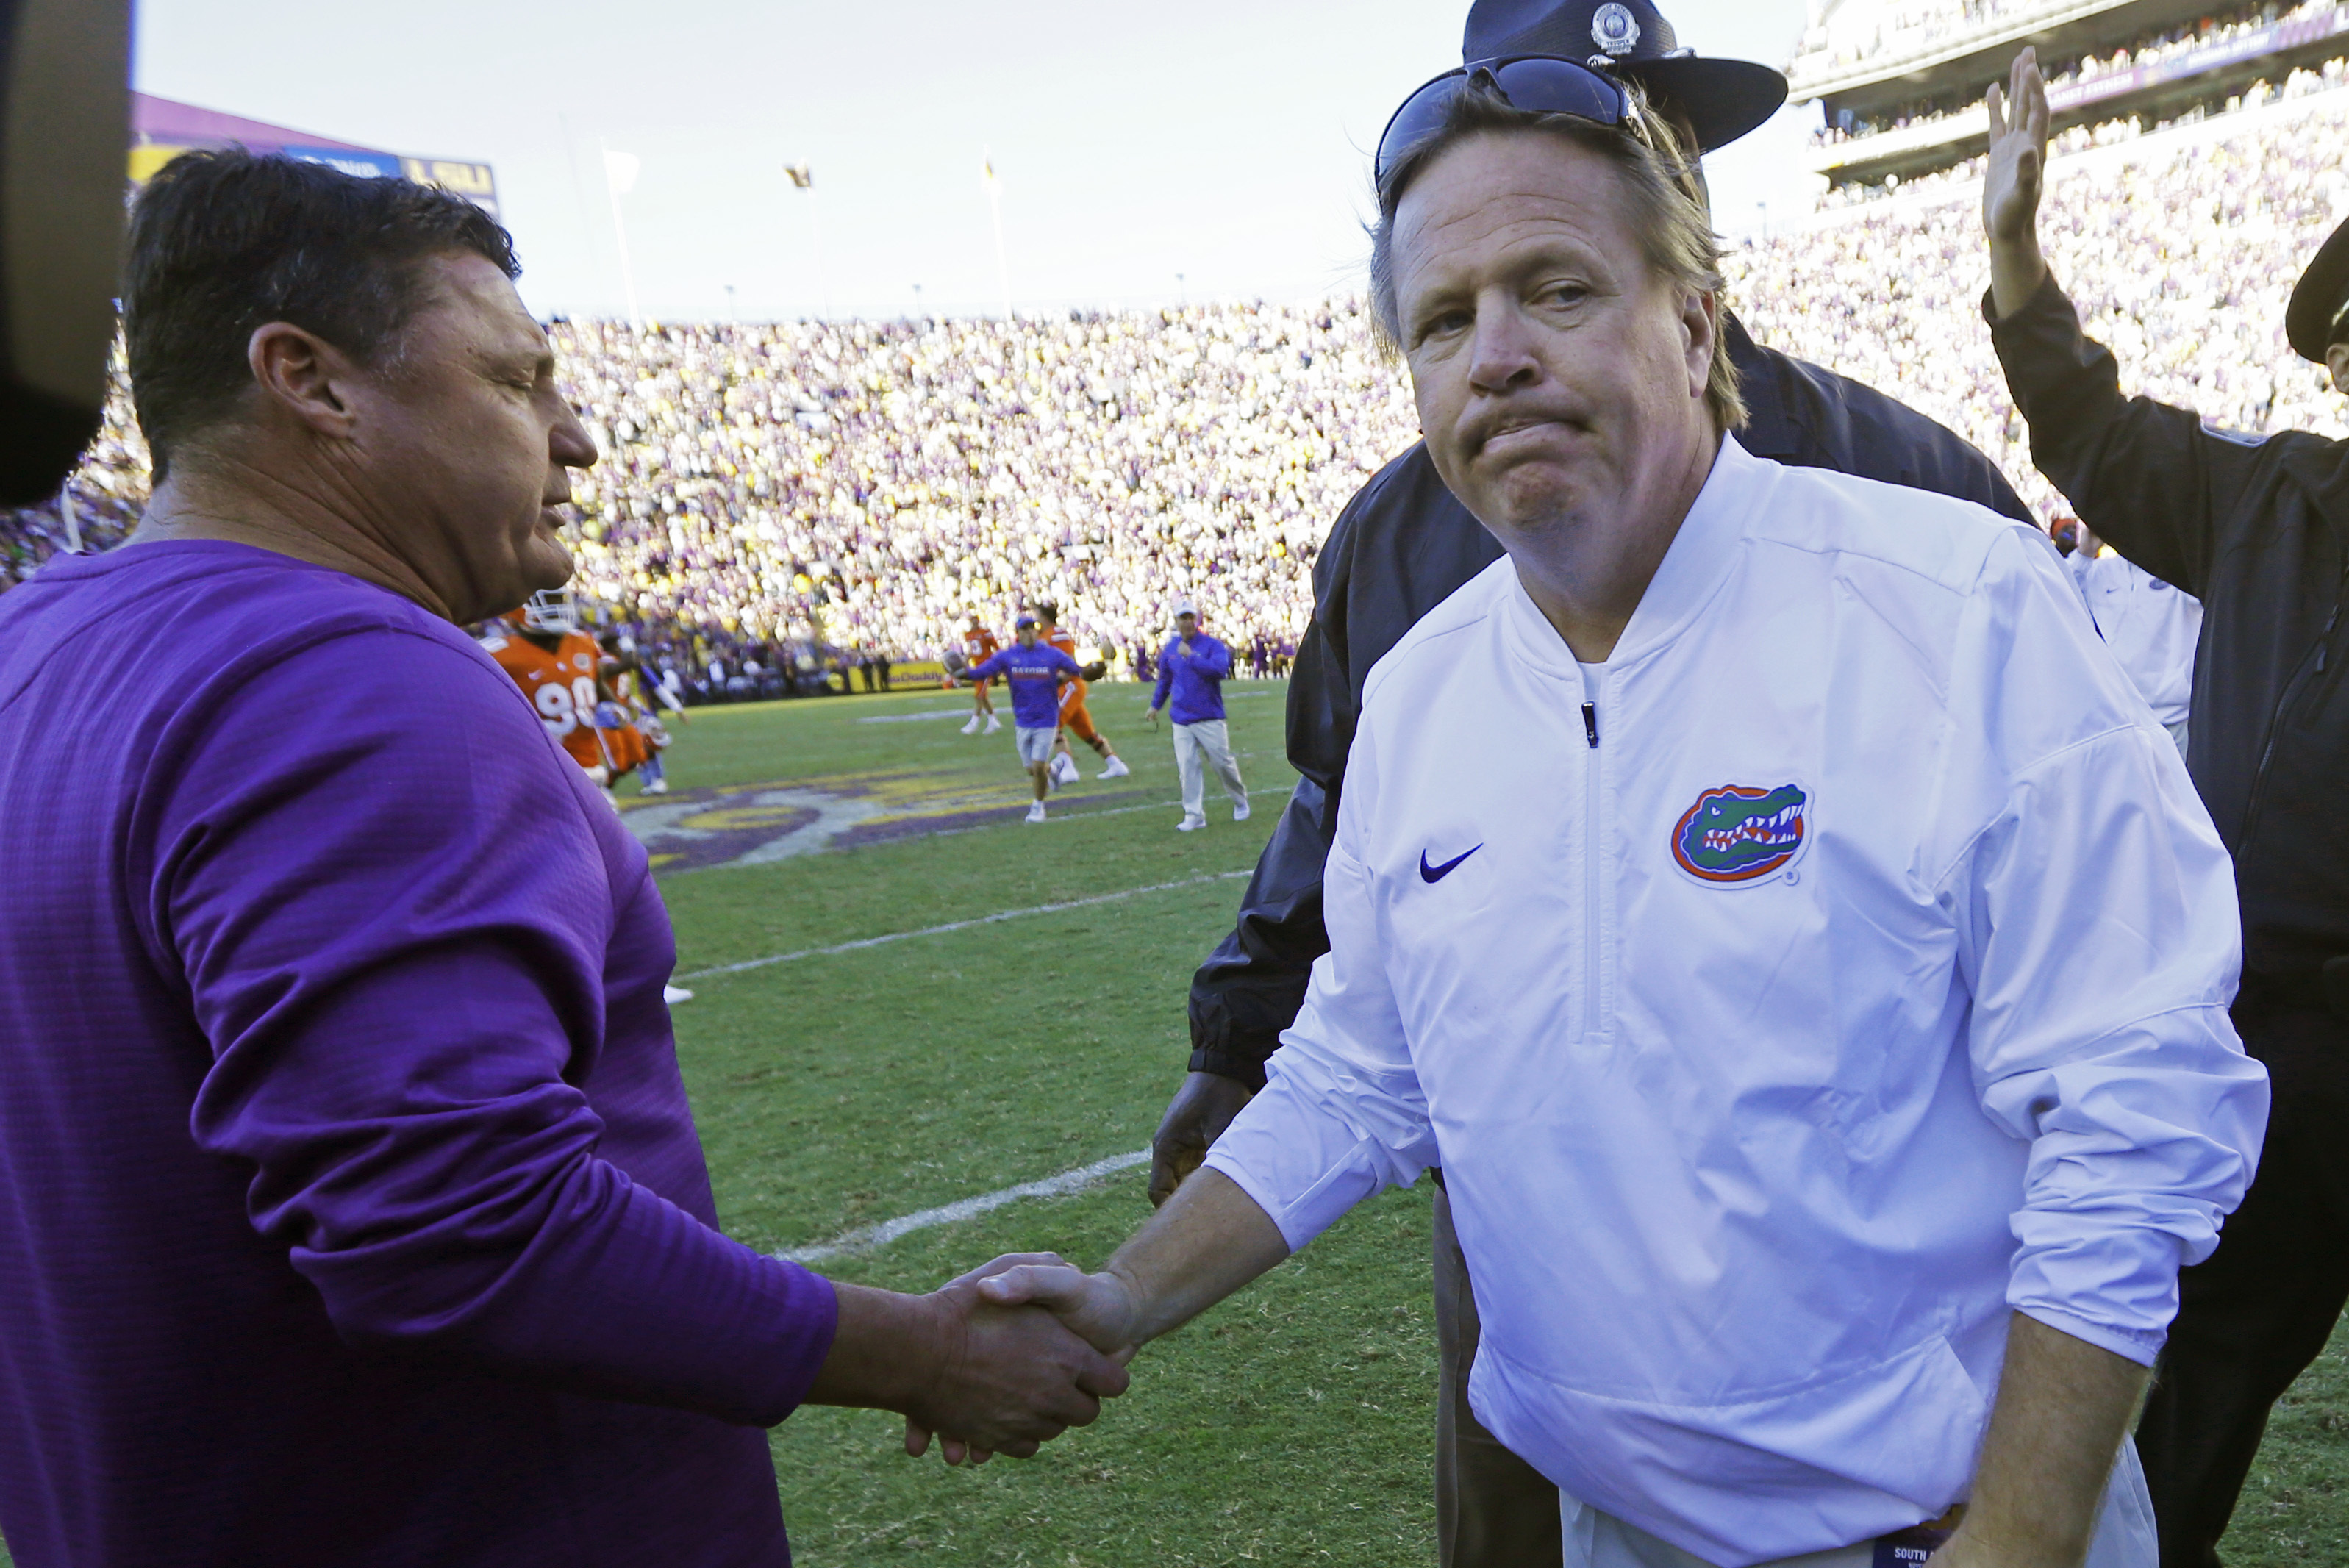 LSU interim head coach Ed Orgeron, left, and Florida head coach Jim McElwain greet each other after an NCAA college football game in Baton Rouge, La., Saturday, Nov. 19, 2016. Florida won 16-10. (AP Photo/Gerald Herbert)